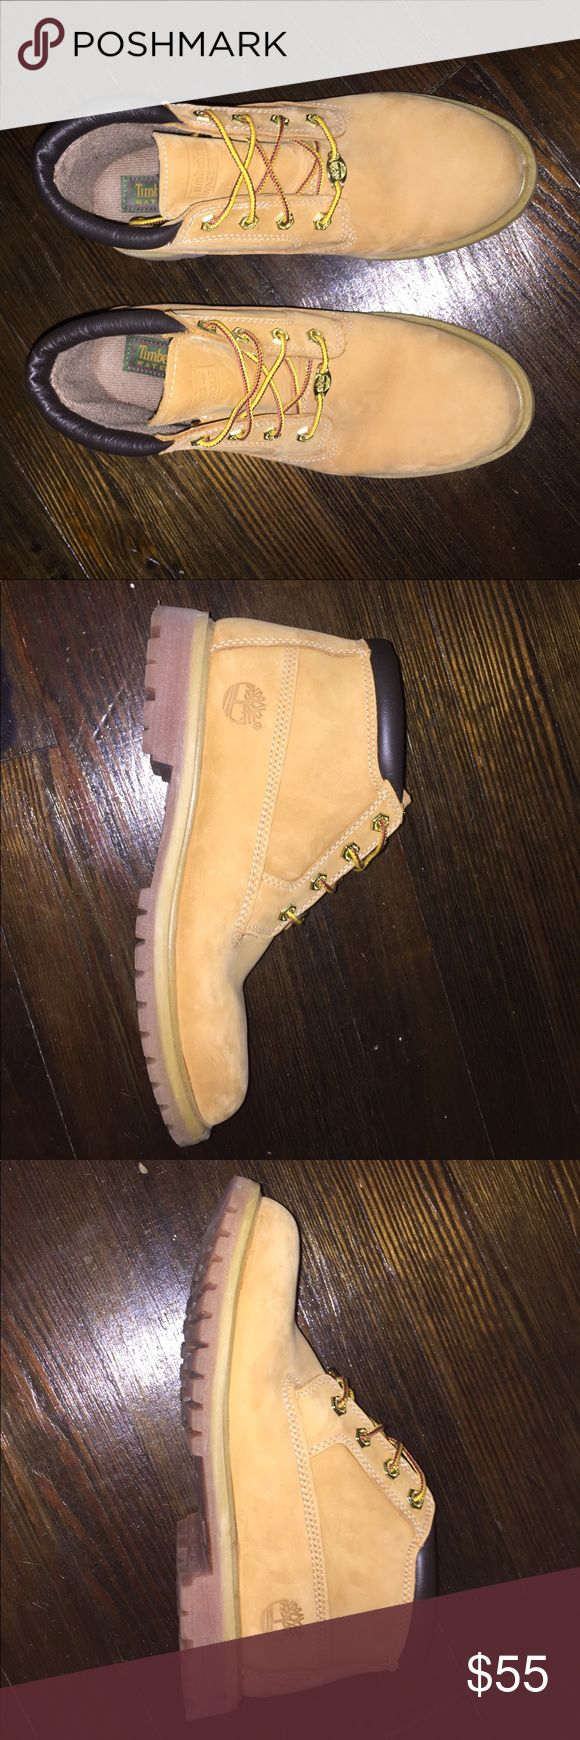 Women's Timberland Chukka Low Like new. Only worn twice. Perfect for the upcoming winter season. Timberland Shoes Winter & Rain Boots